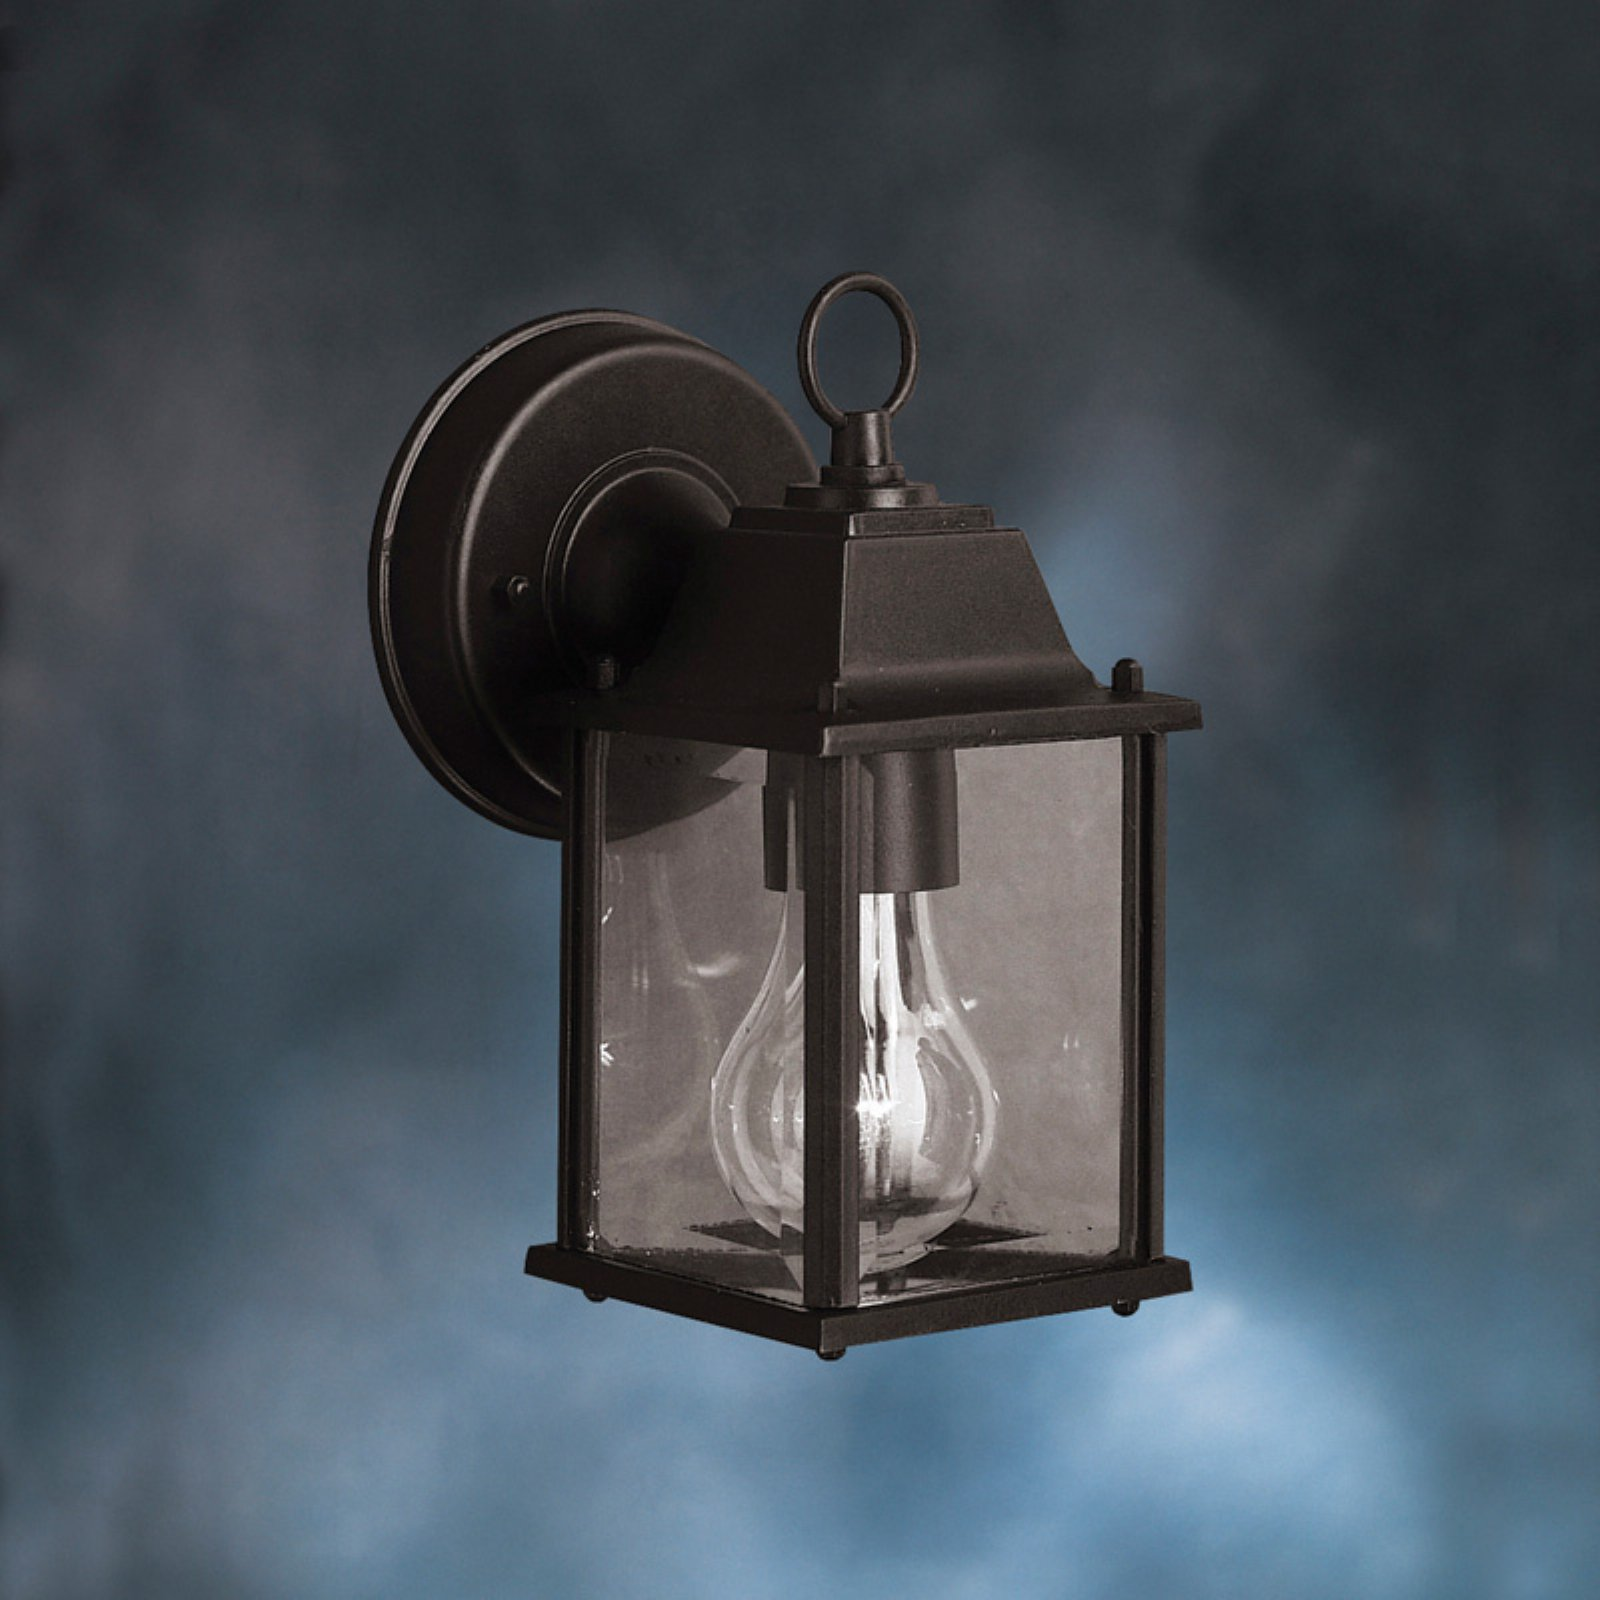 Kichler barrie 9794 outdoor wall lantern 4 75 in